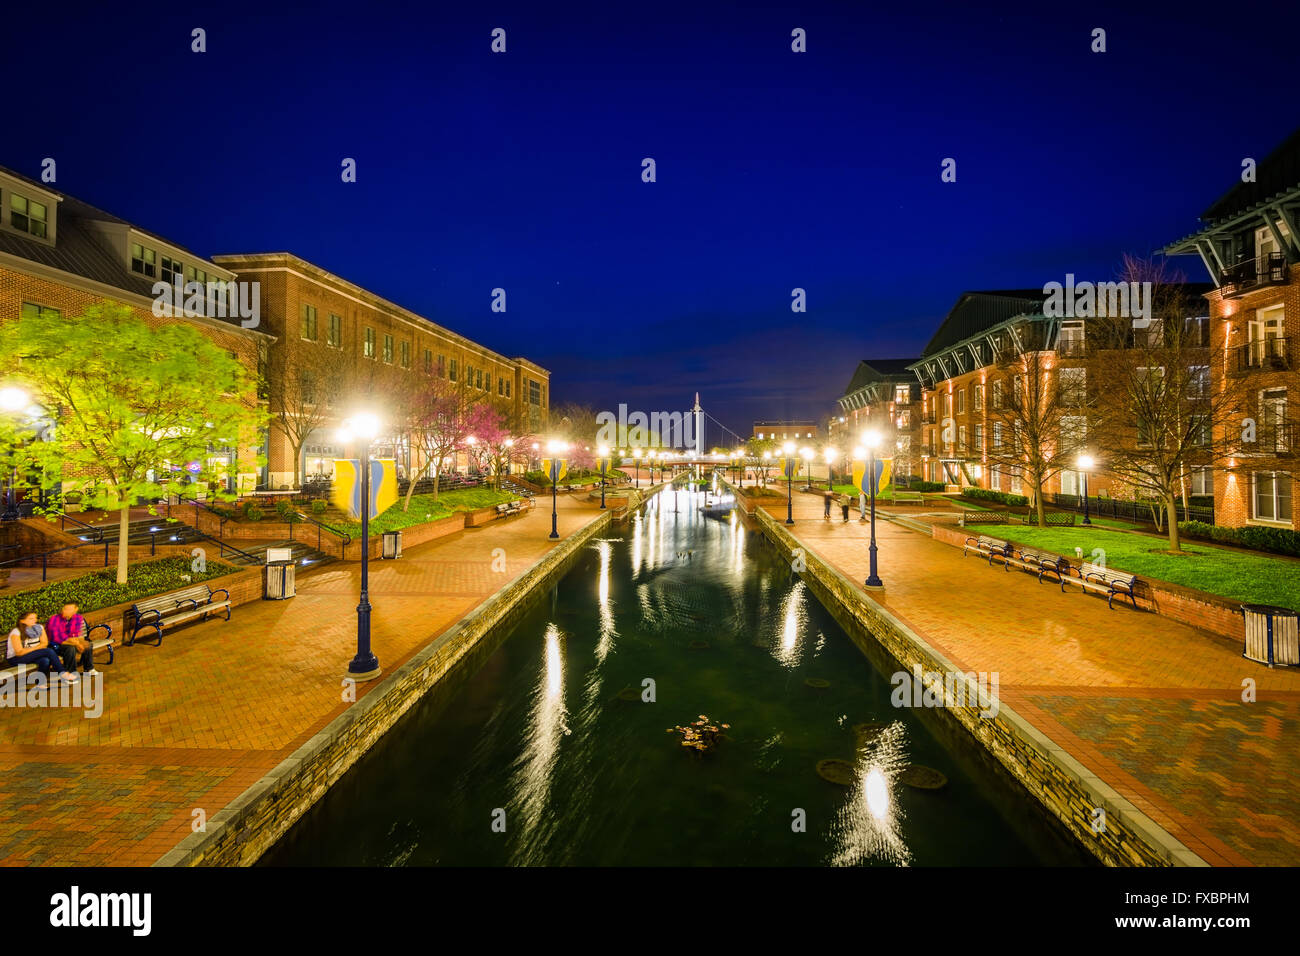 View of Carroll Creek at night, in Frederick, Maryland. - Stock Image